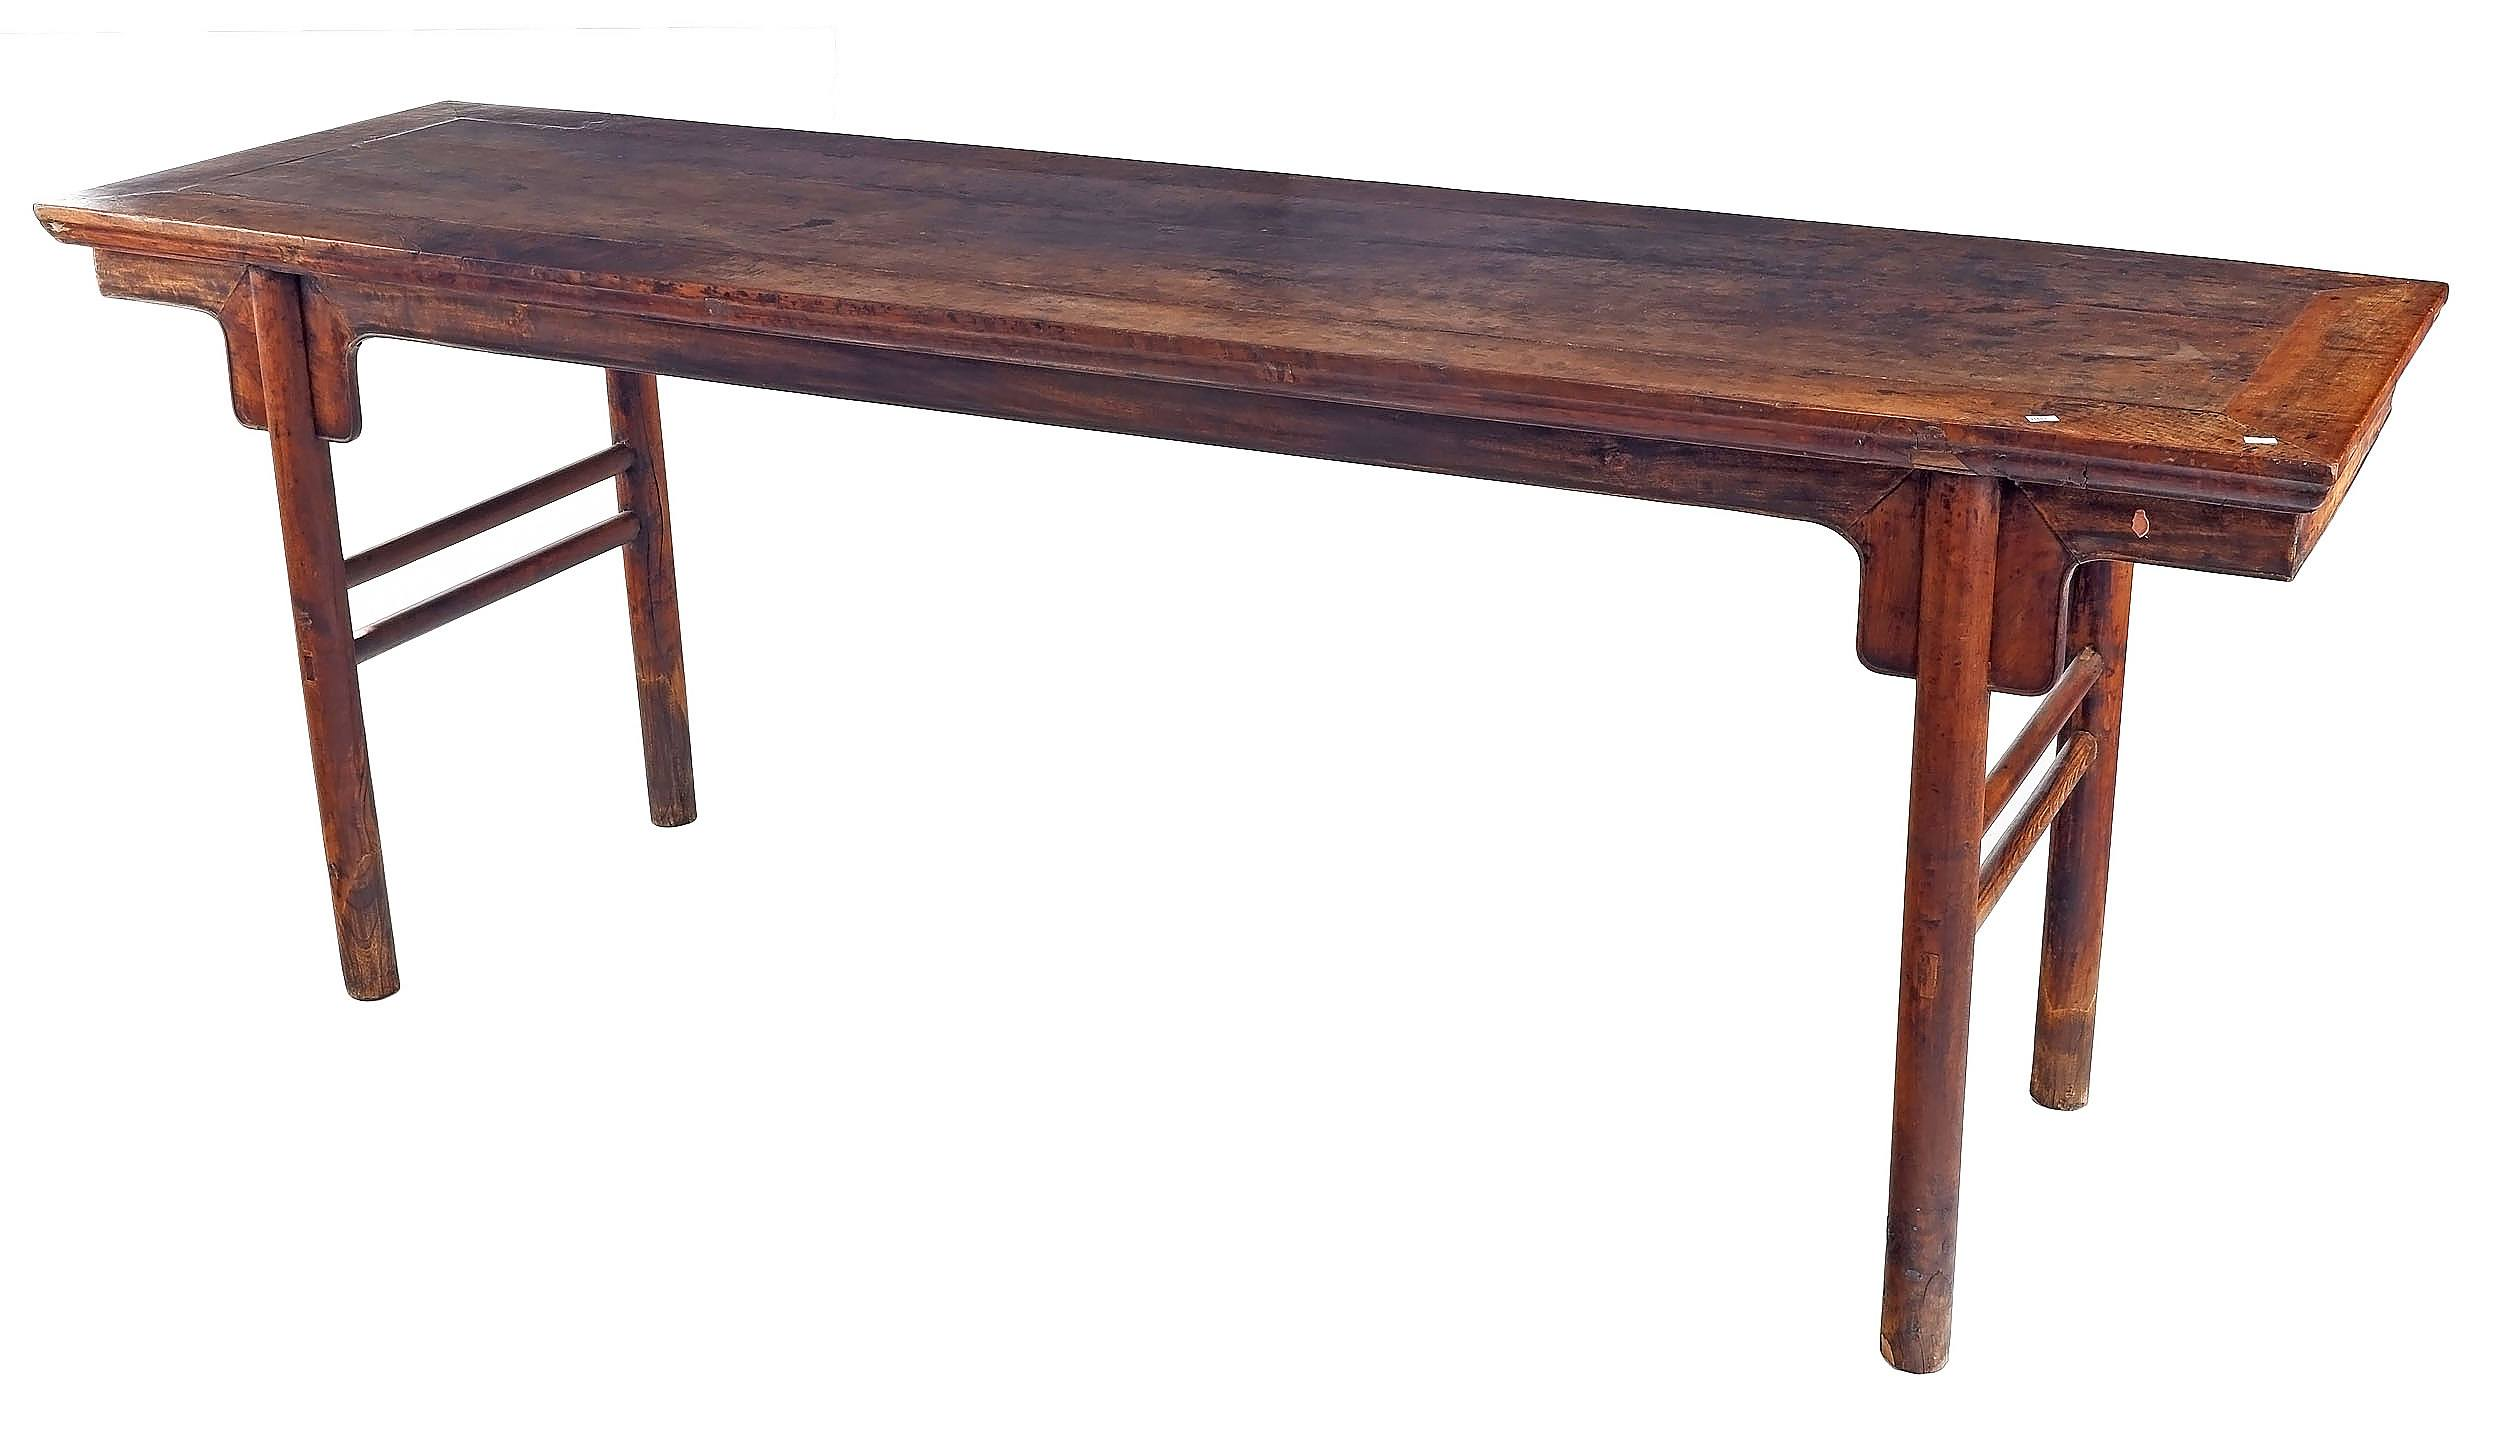 'Antique Chinese Nanmu Wood Recessed Leg Painting Table, Late Ming/Early Qing Dynasty 17th-18th Century'